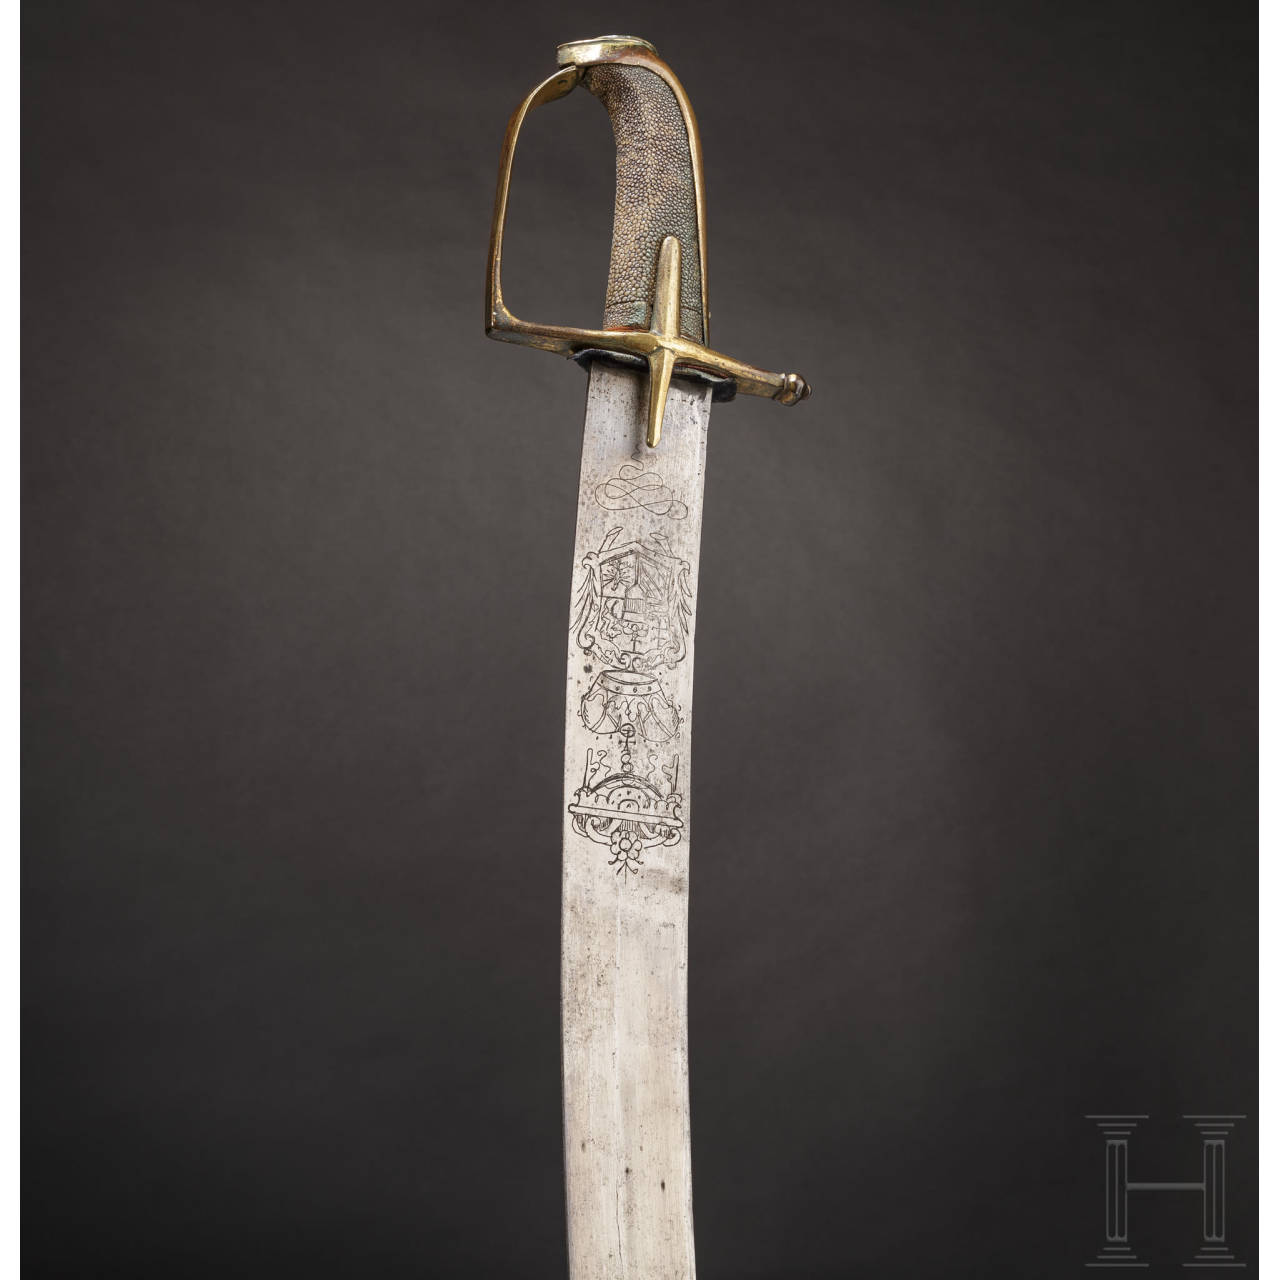 A sabre for hussar officers from the reign of Maria Theresia, circa 1740/50